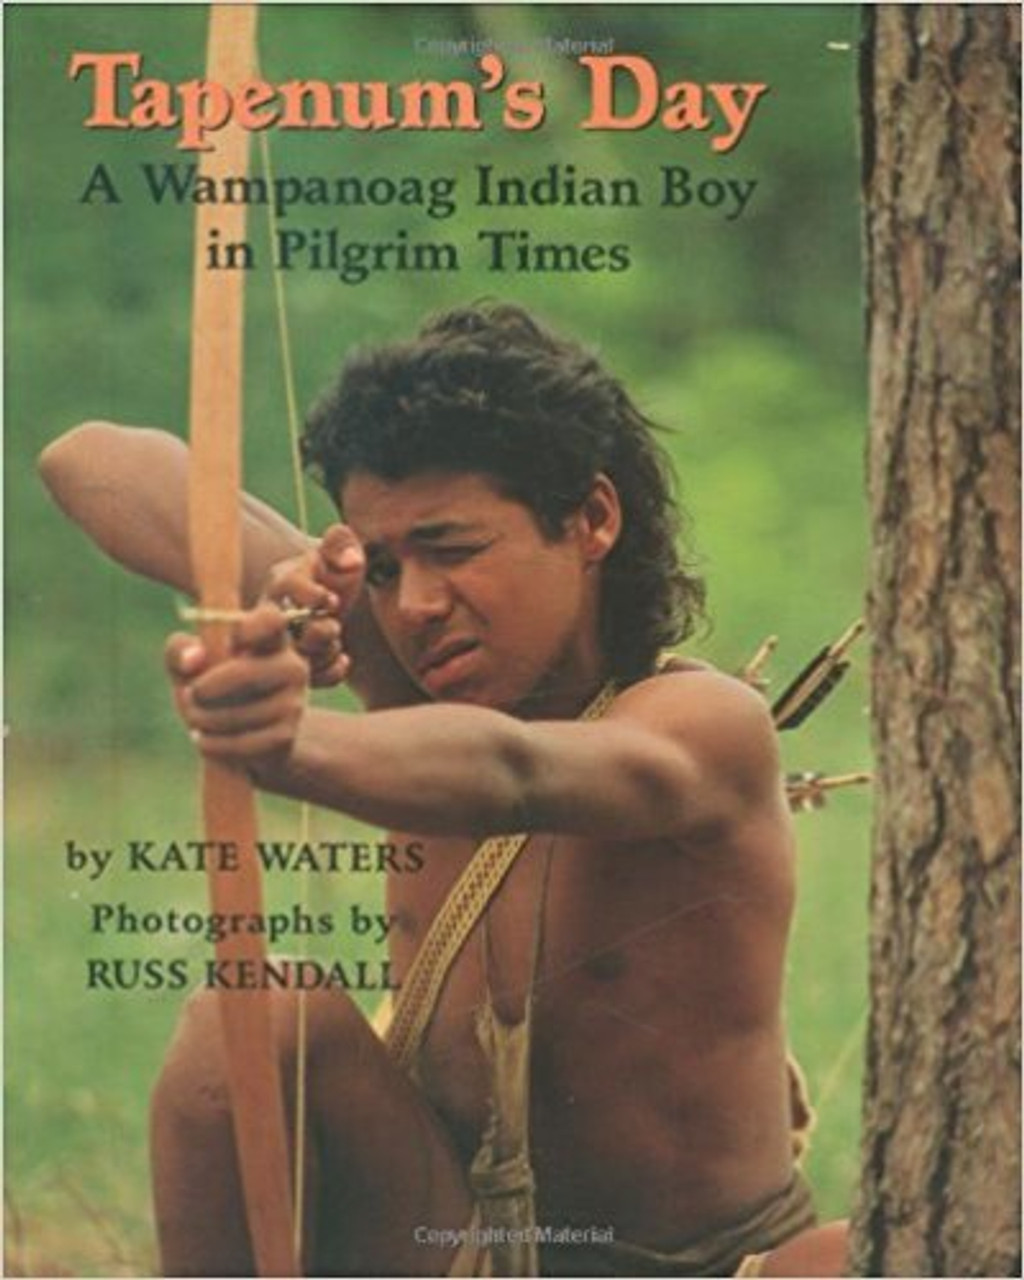 Chosen to become a special warrior prince in 1627, Tapenum prepares himself for the great honor by hunting, fishing, and sharing a day with friends and family, in a story that is complemented by photographs of Plymouth Plantation.